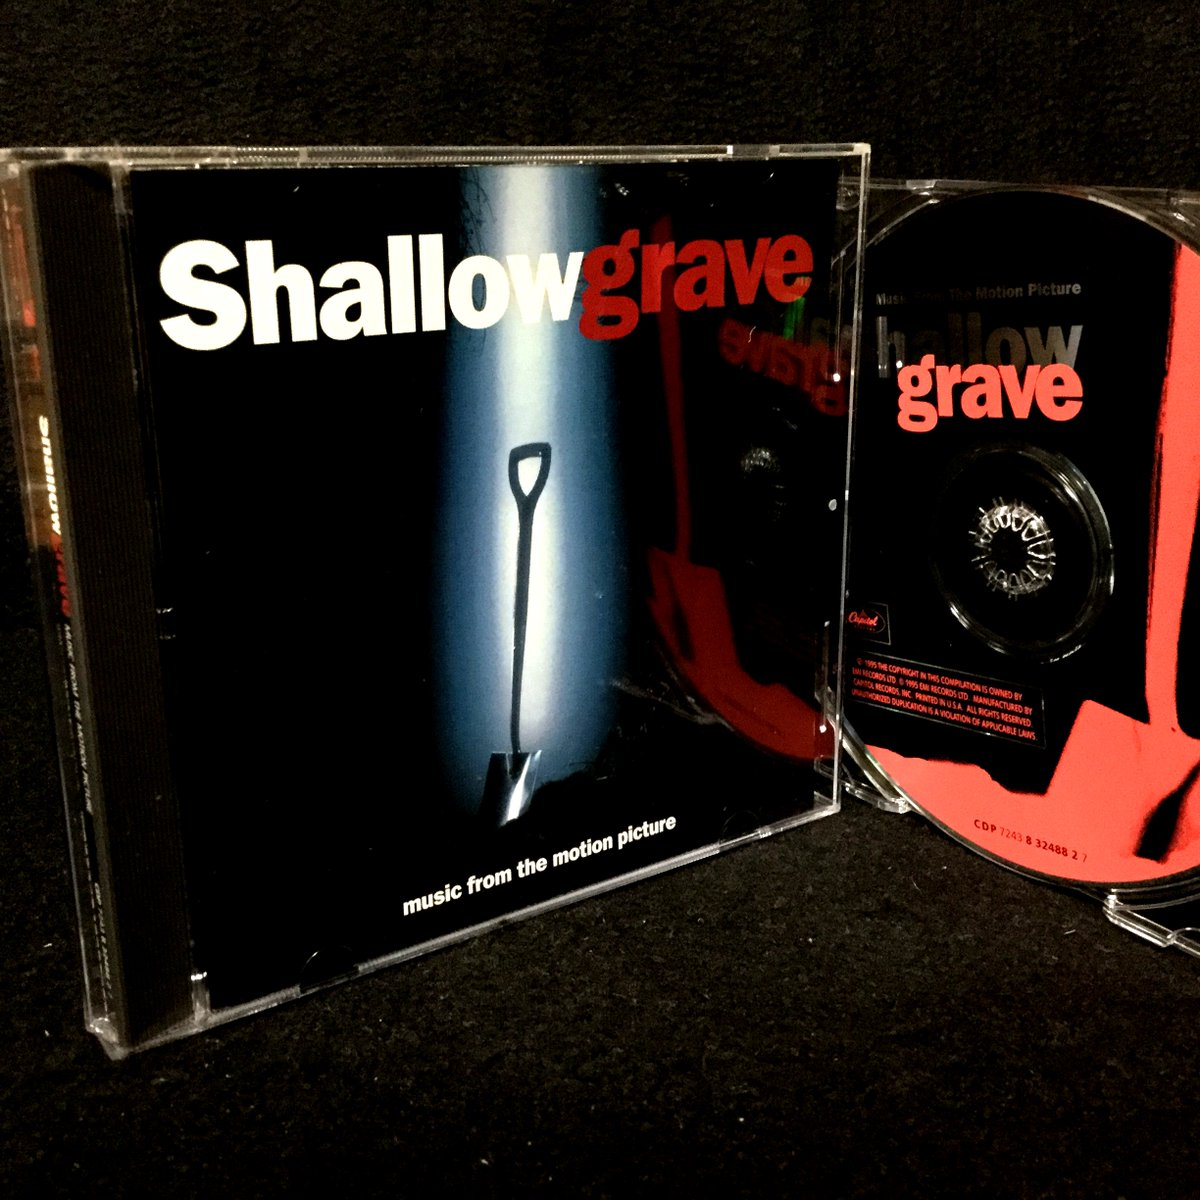 25th ANNIVERSARY!!!!!!!!!!!!!!!!!!!!!!!!!!!!!!!!  Shallow Grave (Music From The Motion Picture) [October 27th, 1995 rateyourmusic / 1995 wiki,discogs / March 26th, 1997 JAPAN] https://t.co/eHdpz8xE1s